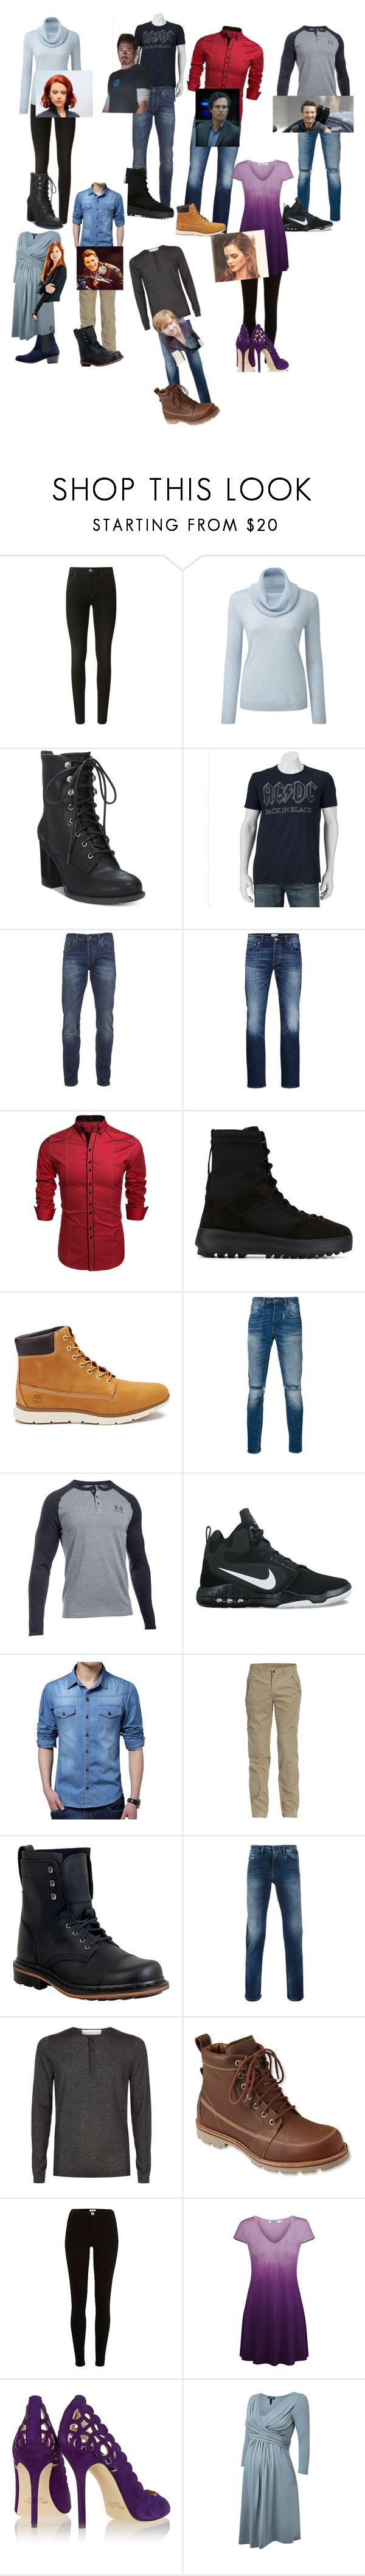 """""""This is madness...."""" by doggyfroggy ❤ liked on Polyvore featuring J Brand, American Rag Cie, Scotch & Soda, Marvel, Jack & Jones, adidas Originals, Timberland, Levi's, Under Armour and NIKE"""